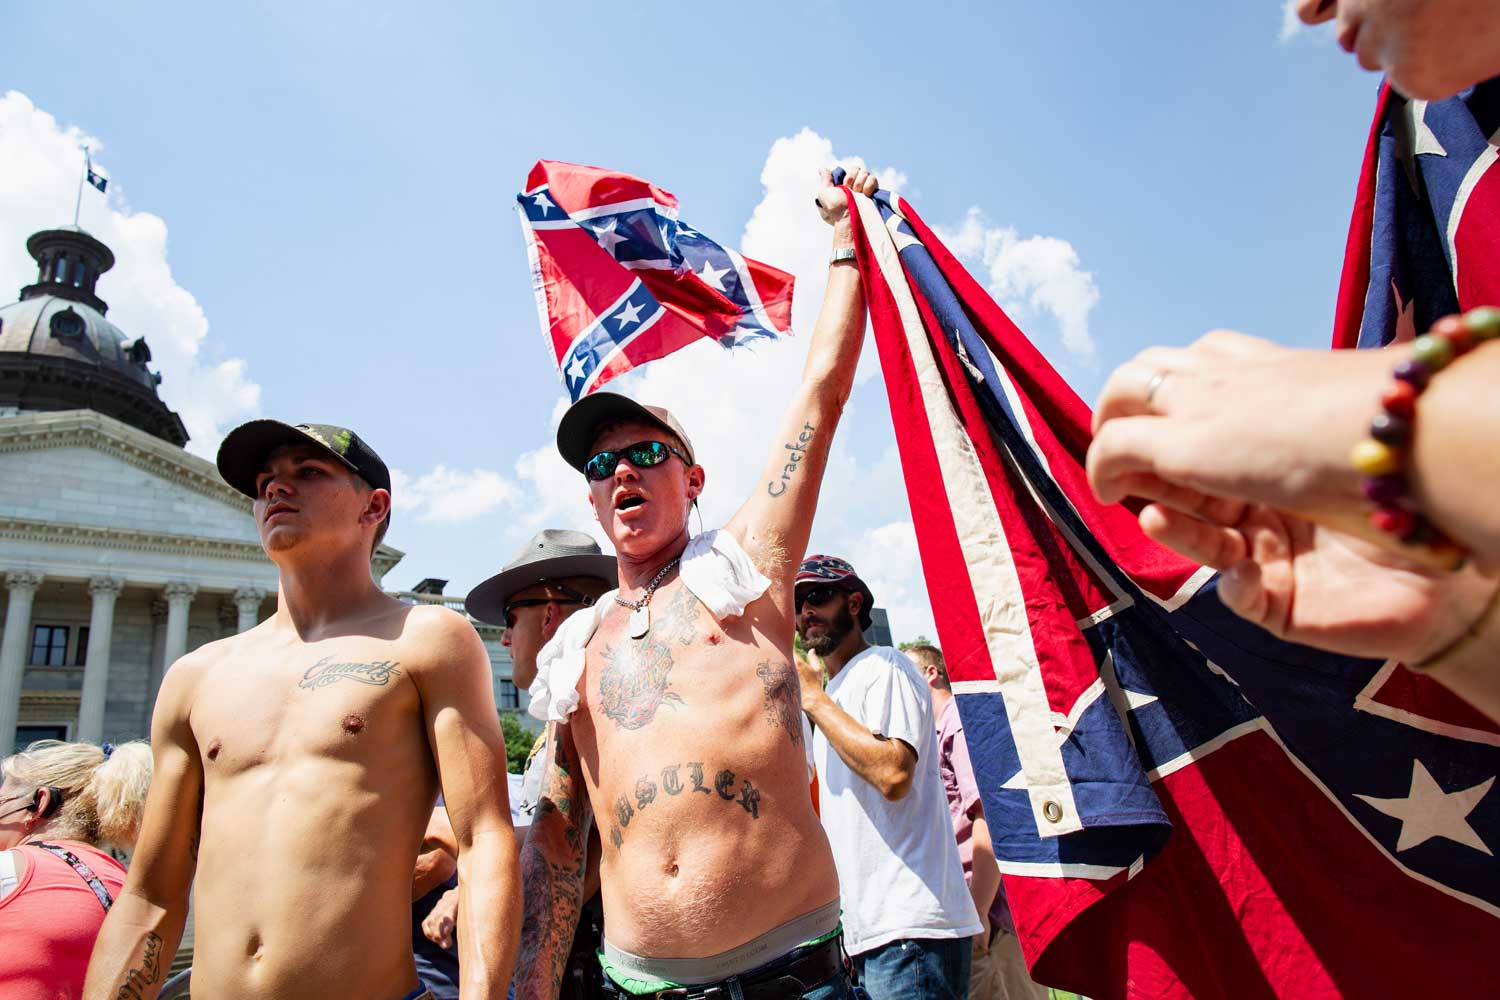 Shirtless tattooed White men carrying Confederate flags are among a group gathered in front of the South Carolina State House.